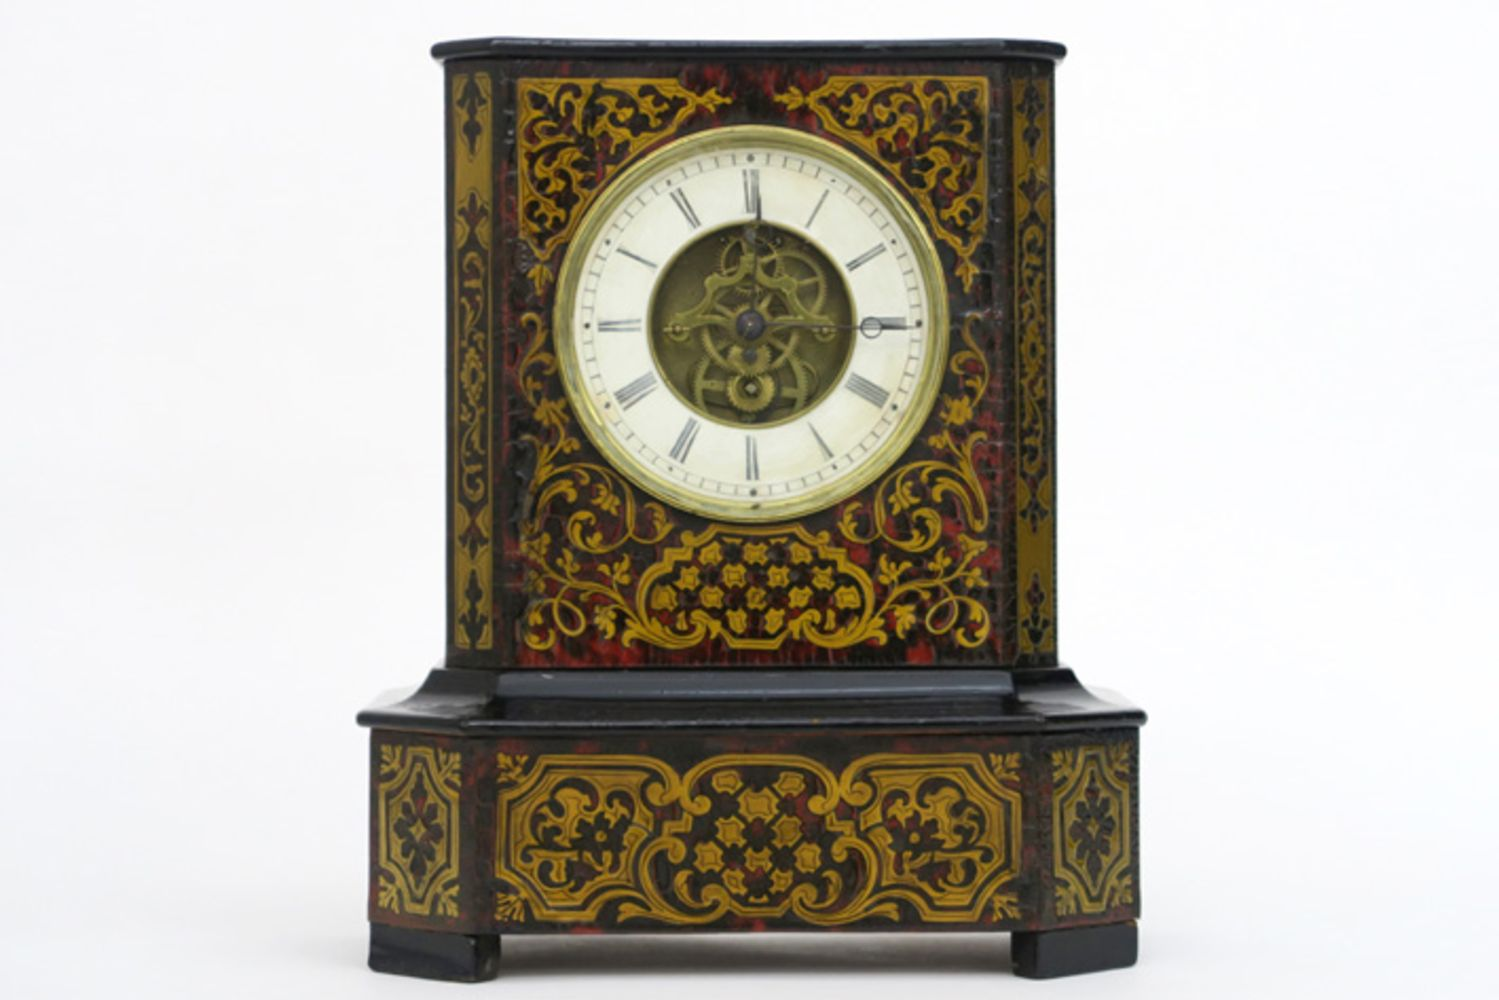 Classical art and antiques (15 ° -19 ° century) (Gent)